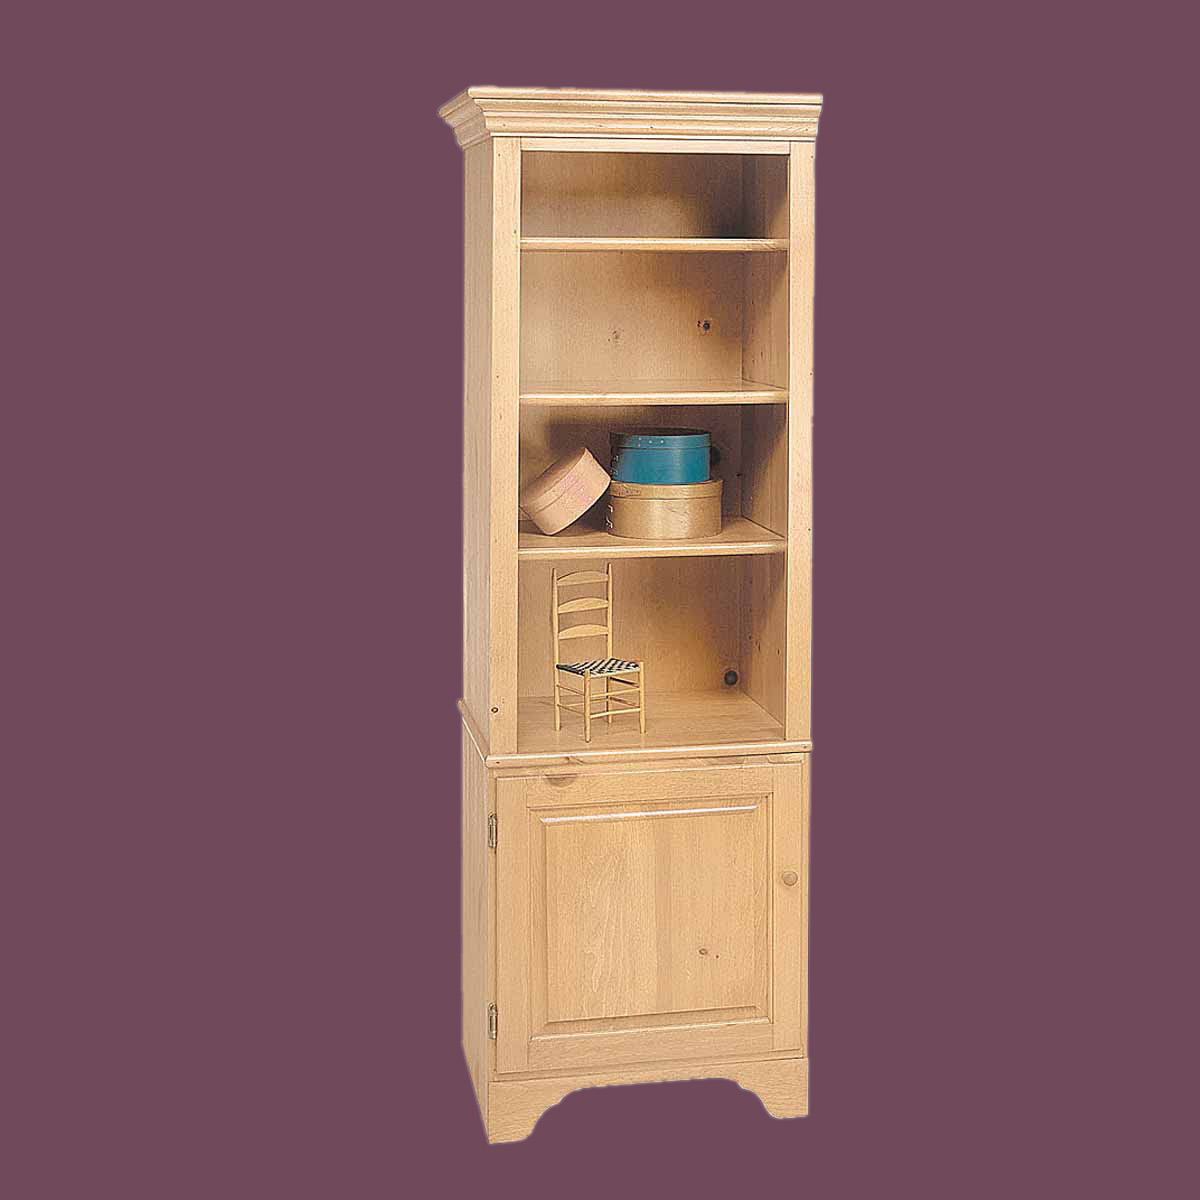 #AA6E21 Bookcase Unfinished Pine Shaker Kit 66.5 H with 1200x1200 px of Recommended Unfinished Book Shelves 12001200 save image @ avoidforclosure.info